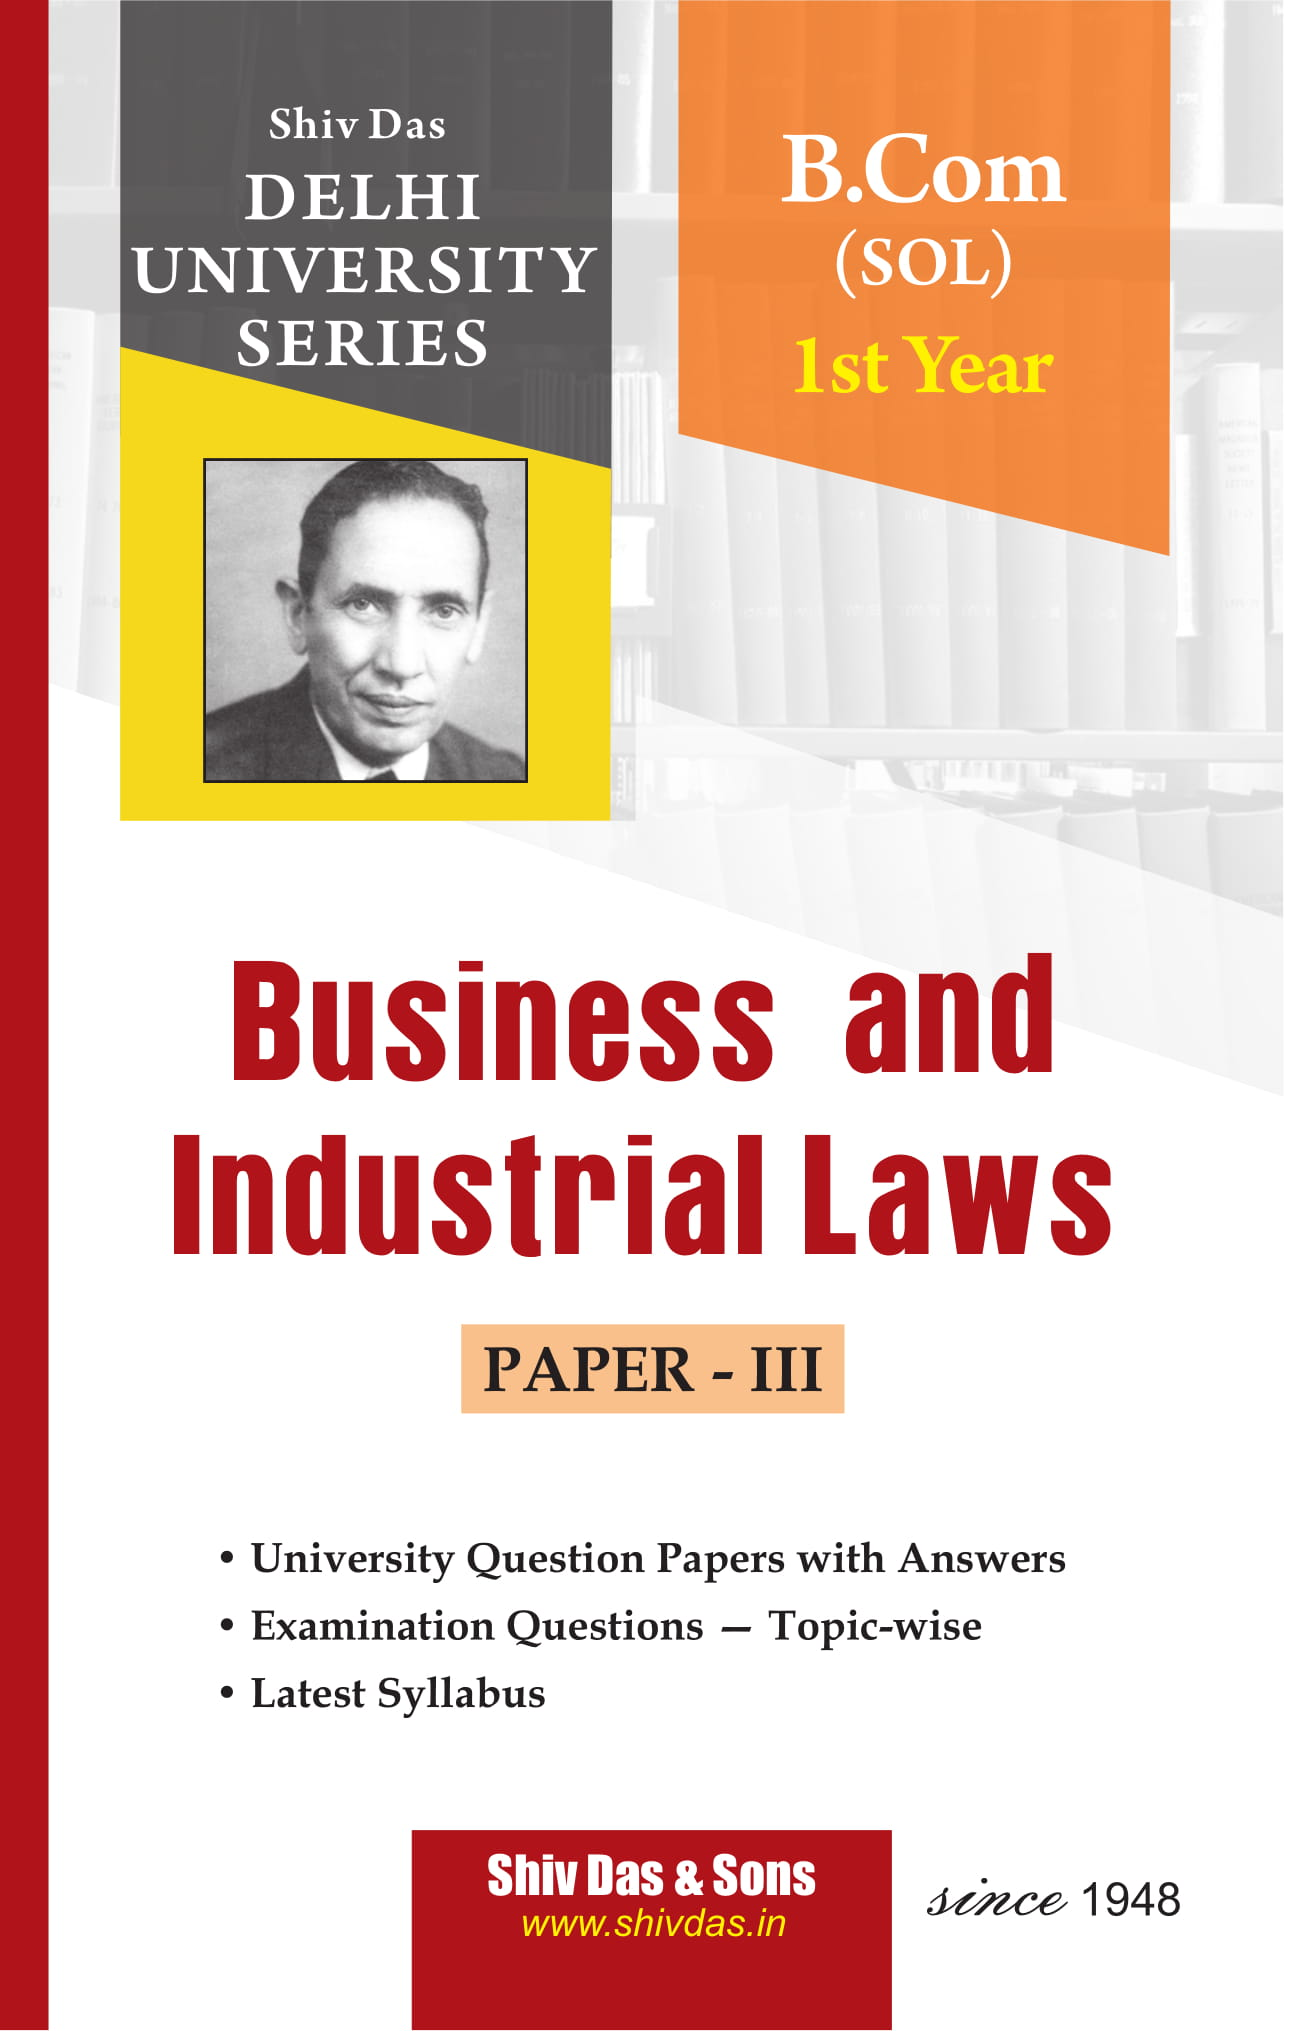 Business and Industrial Laws (Eng. Medium) for B.Com 1st Year SOL/External